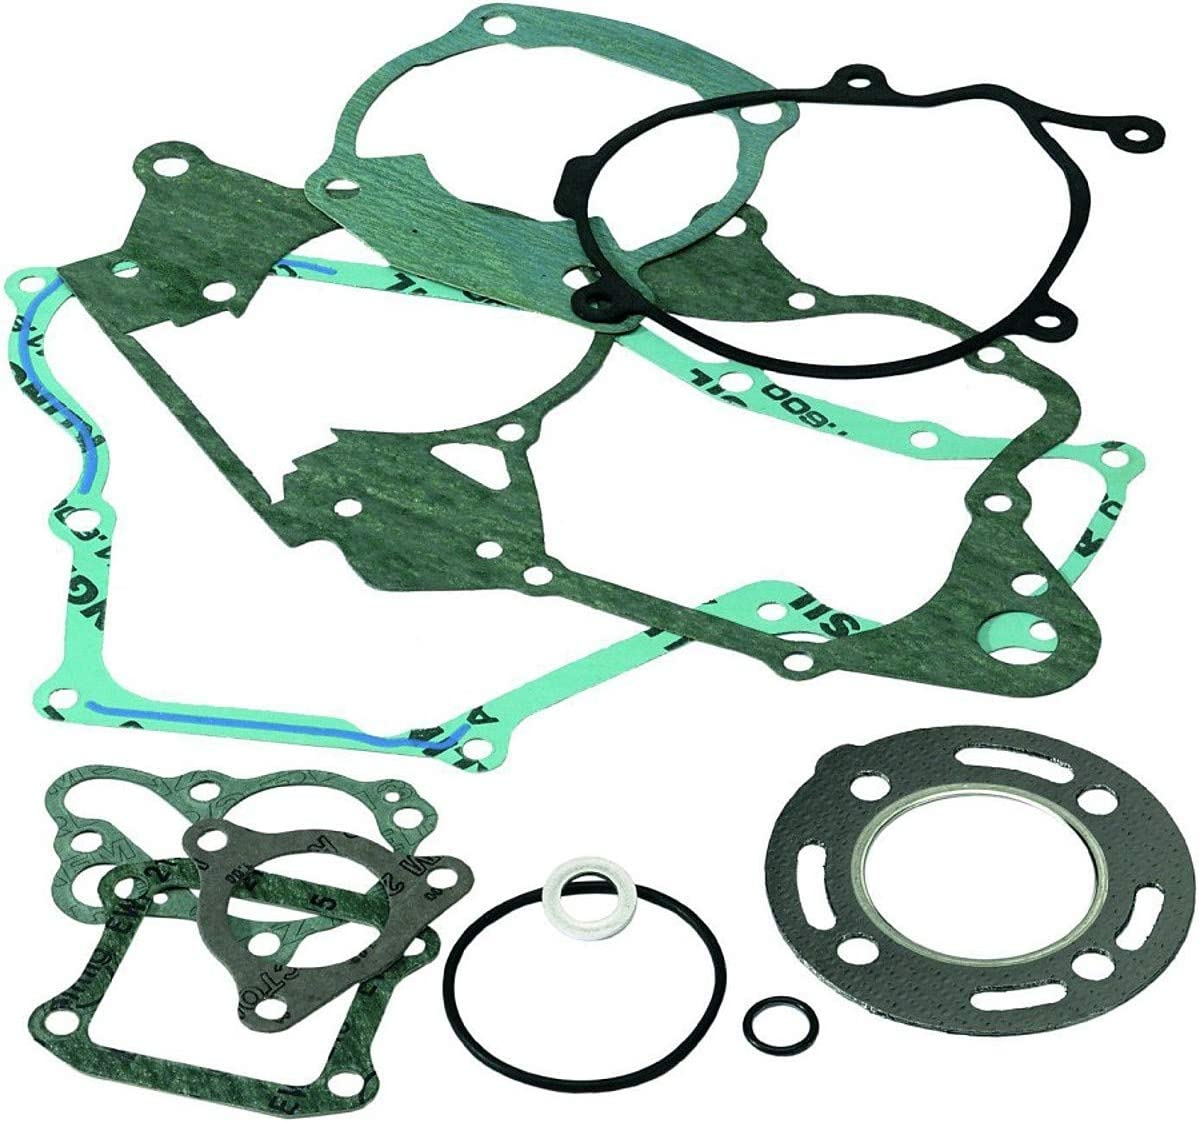 unisex Athena Gasket Kit - Complete Max 51% OFF for 95-03 Kawasaki VN800A